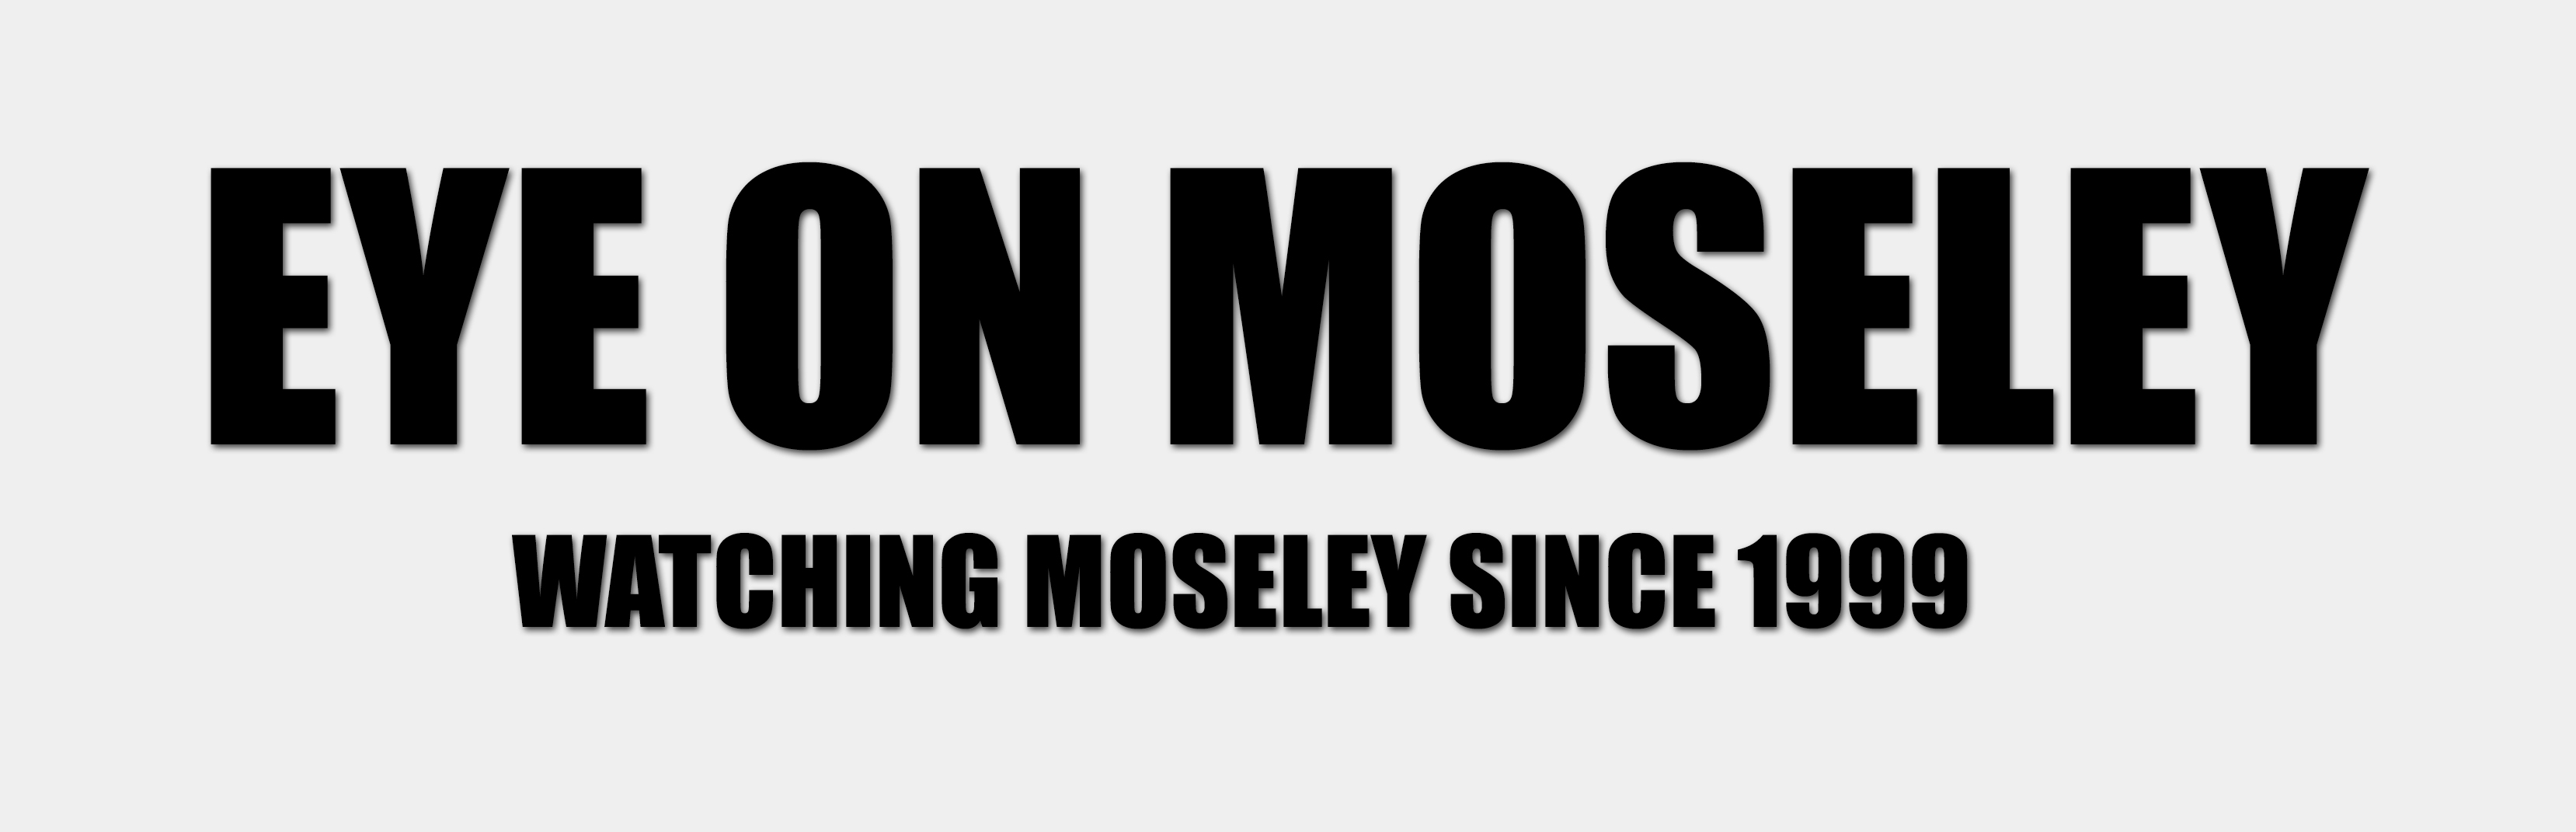 Eye on Moseley